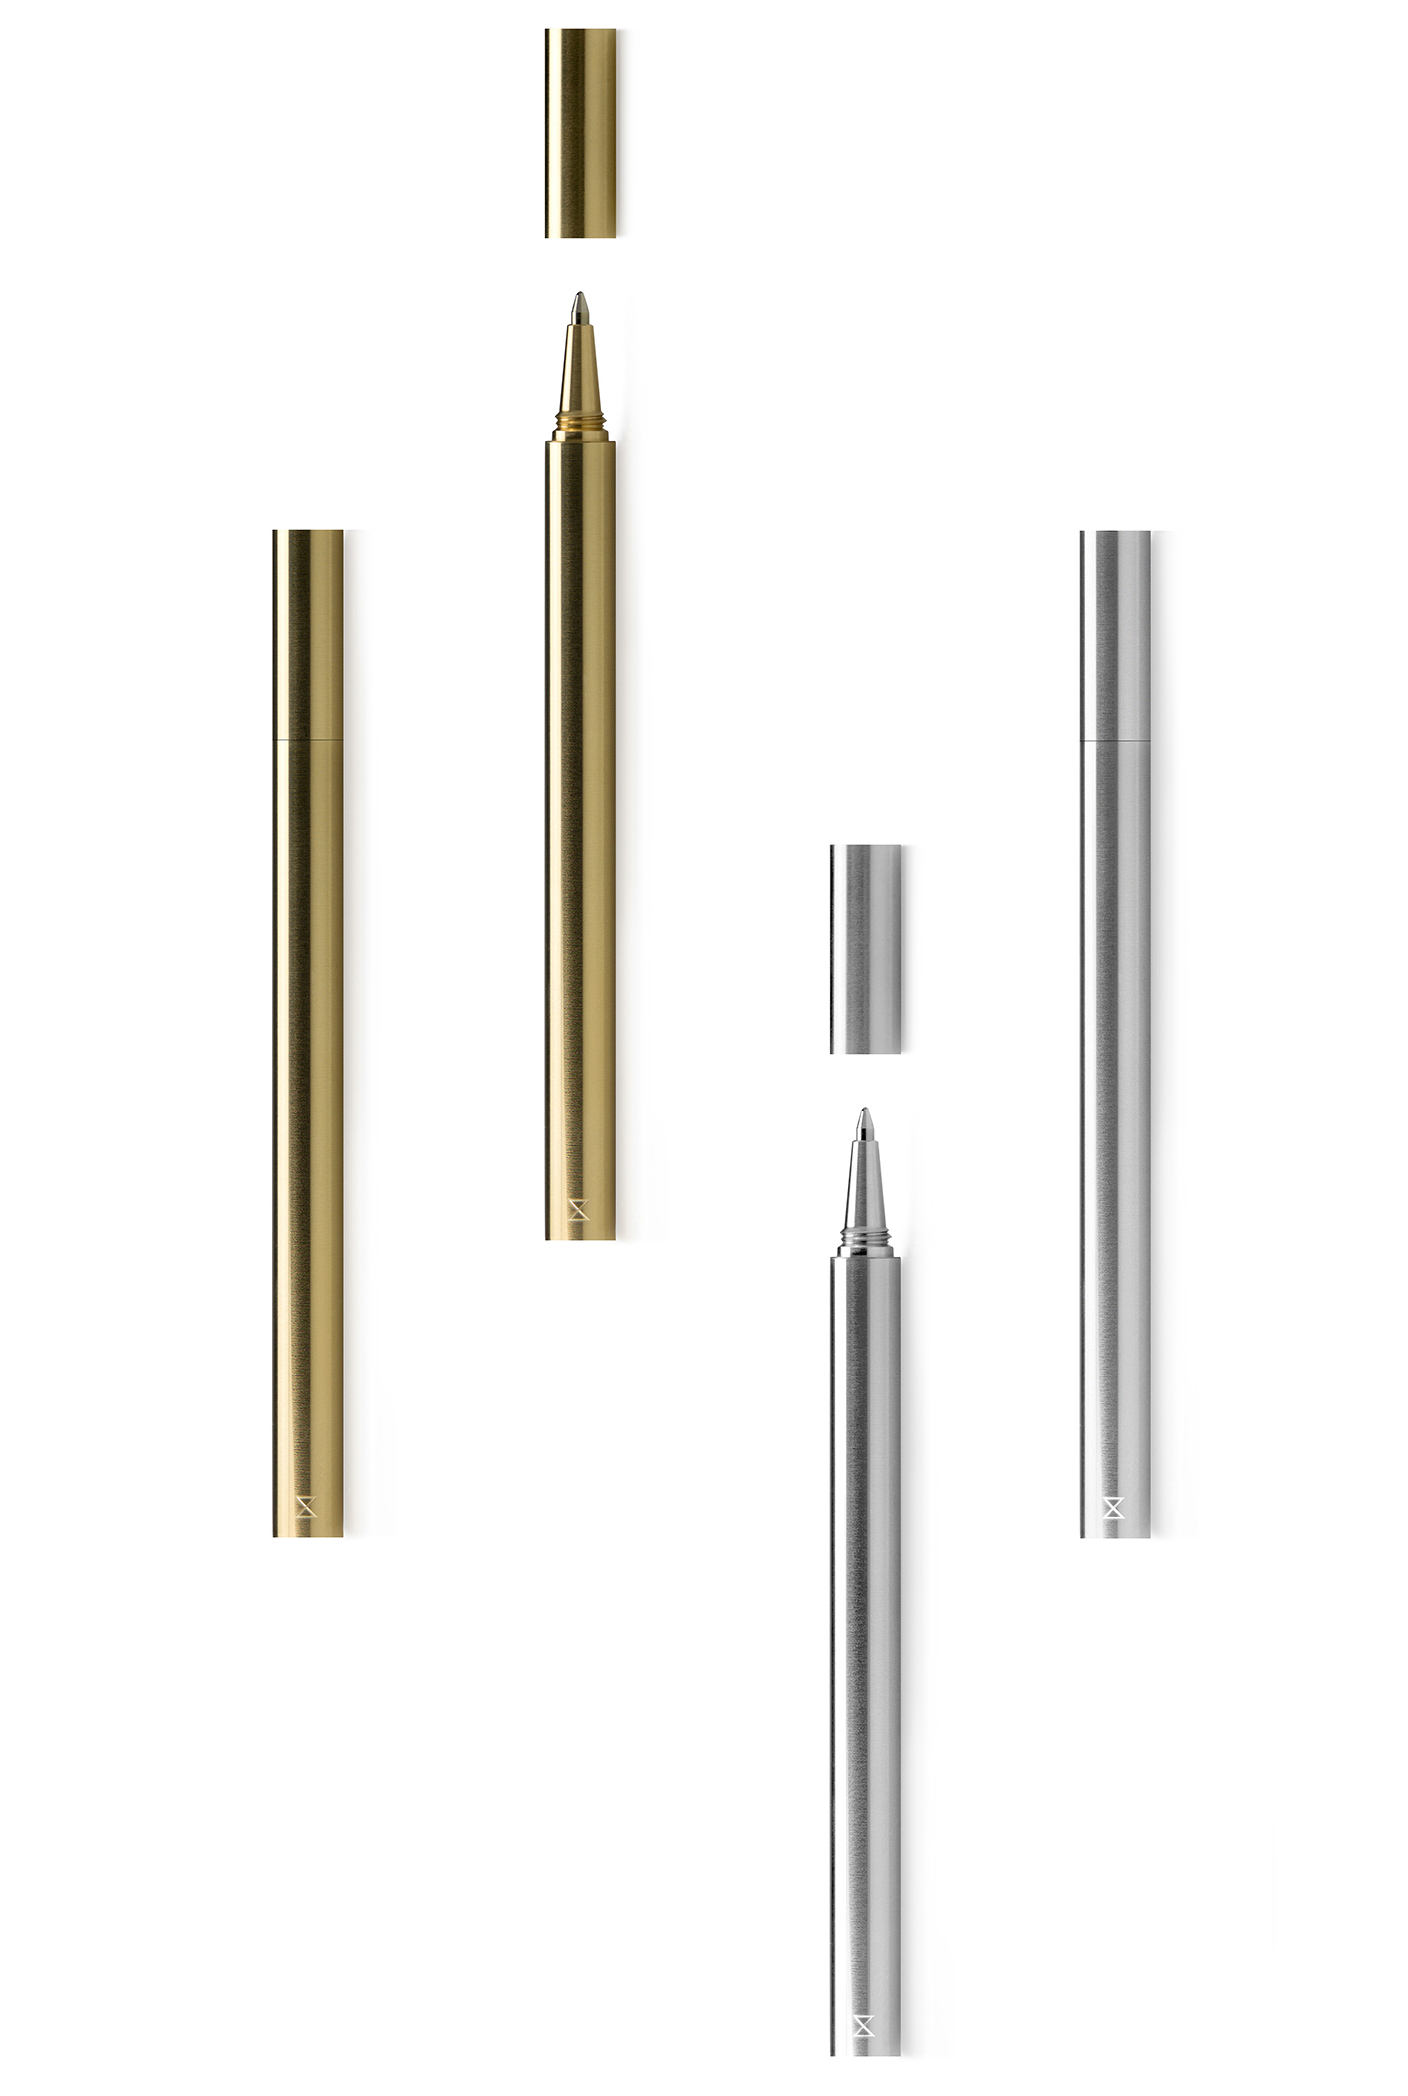 Curator: there is nothing to distract you from the beauty of the material and the quality of craftsmanship. - The pen and cap is precision machined from a single bar of solid brass or aluminium.